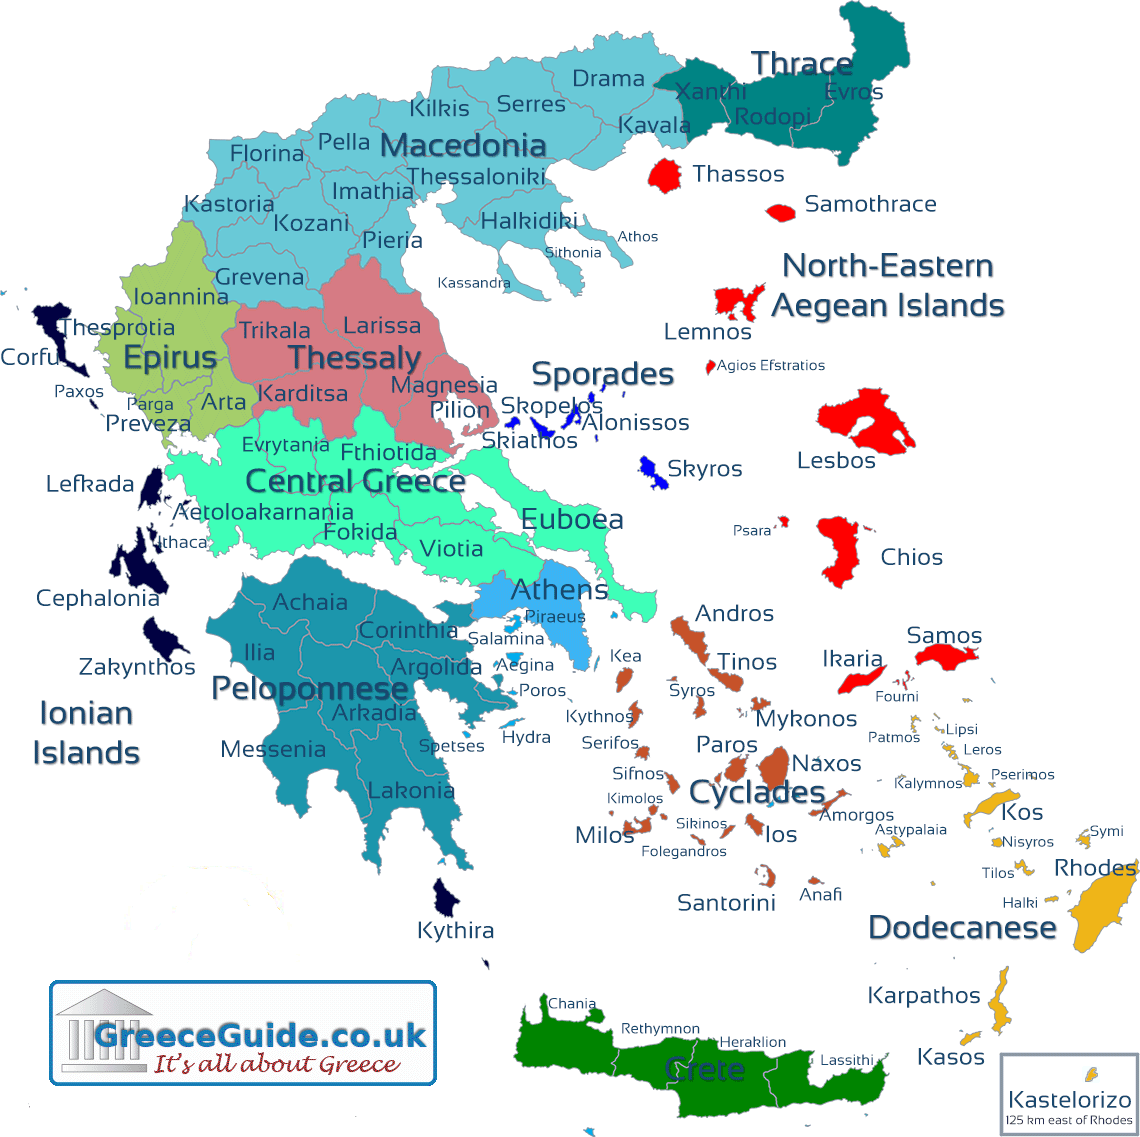 Greece Guide Co Uk It S All About Greece